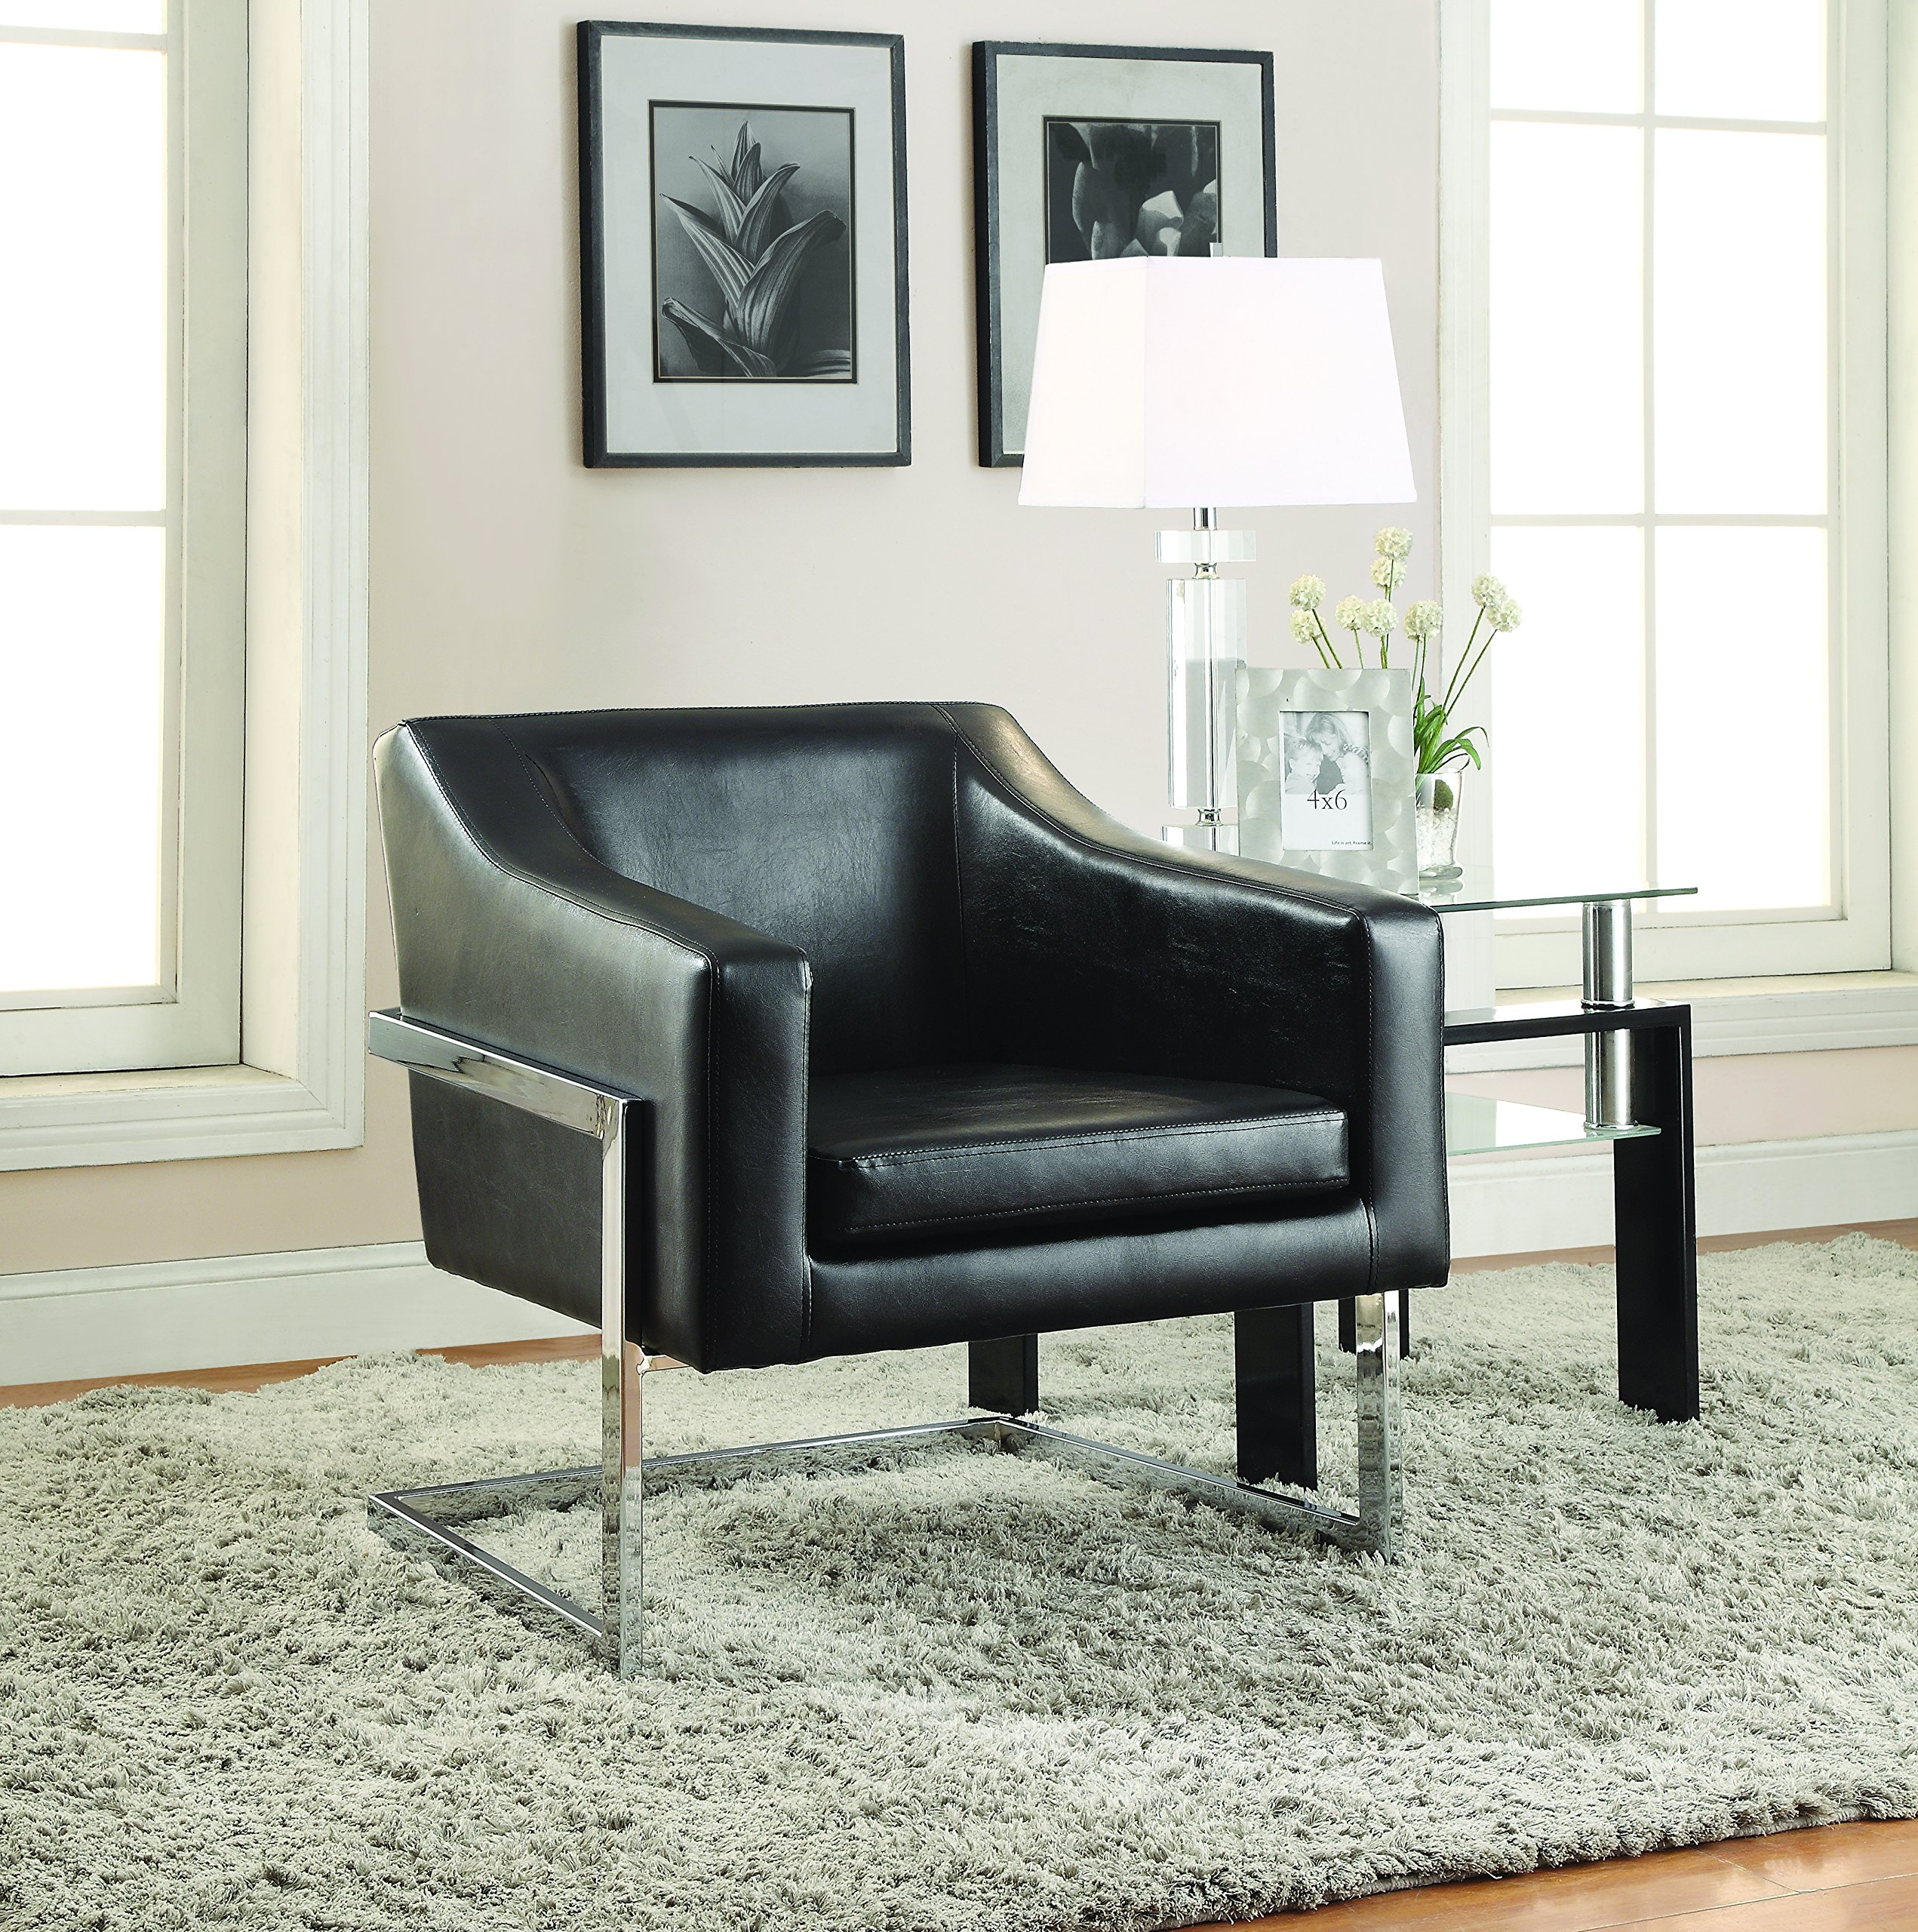 Coaster Home Furnishings 902538 Accent Chair, NULL, Black